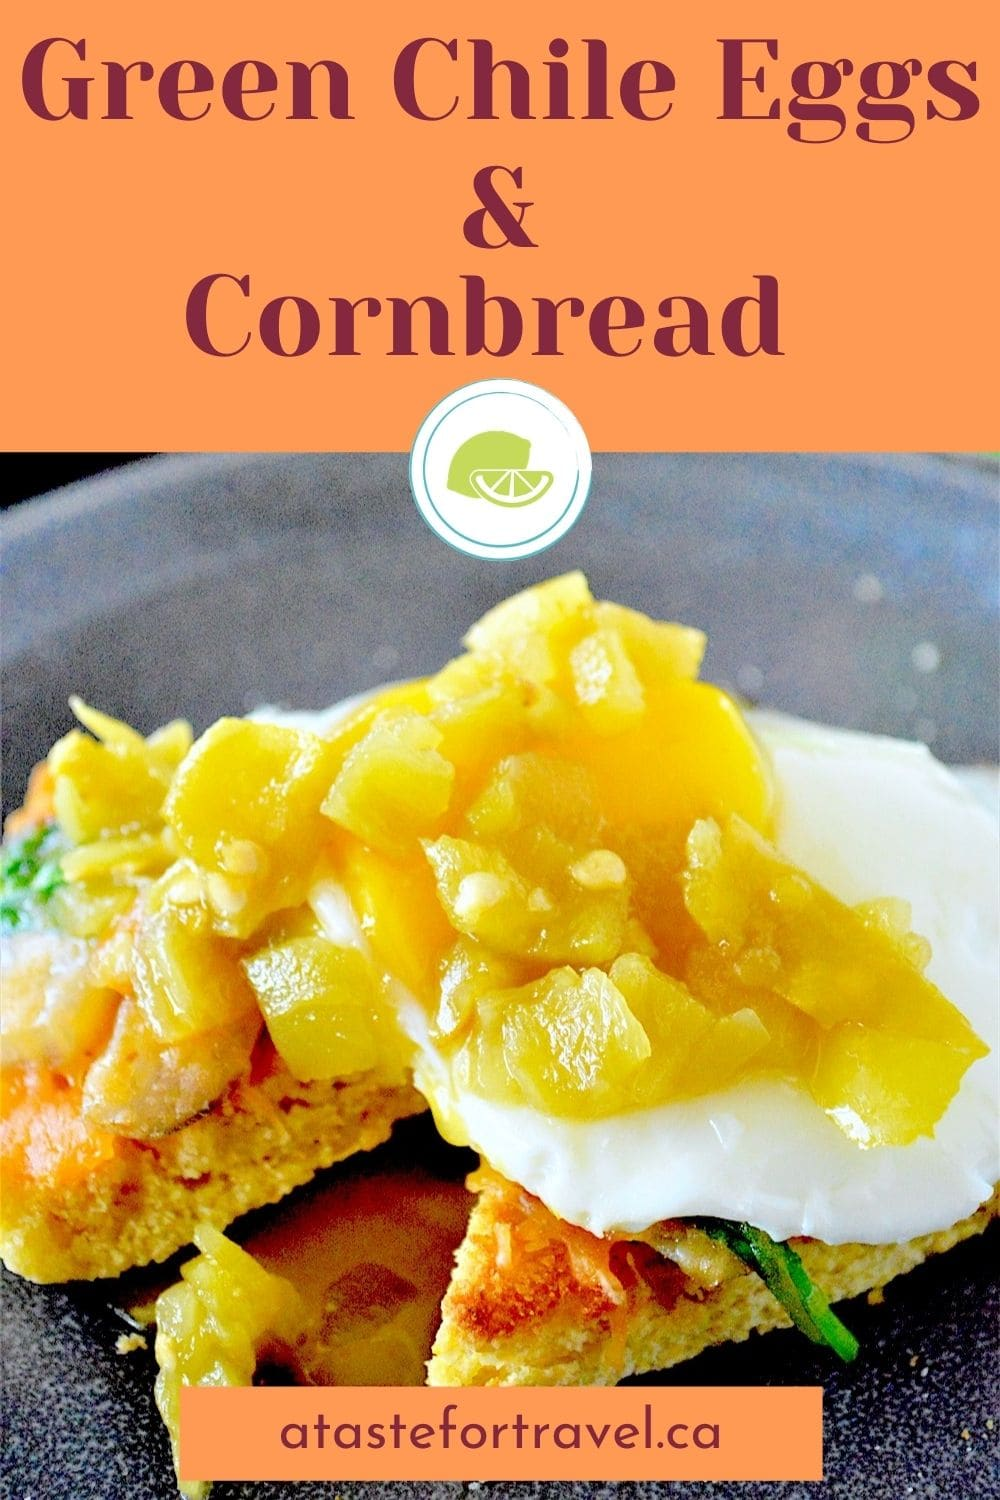 Egg topped with green chiles on cornbread with Pinterest text overlay.